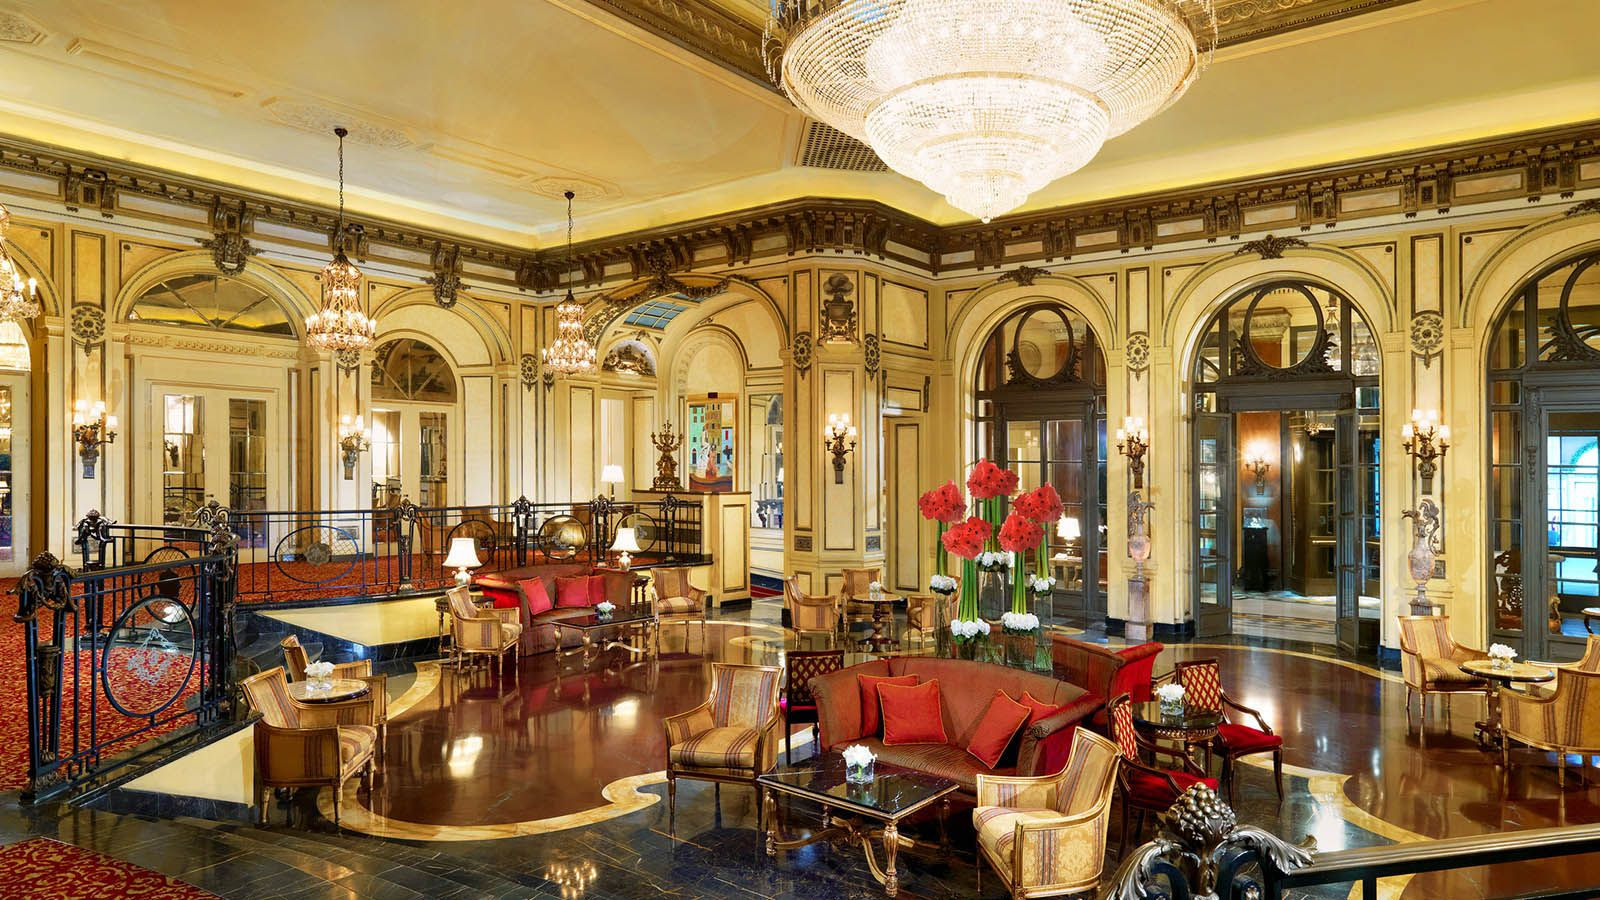 La Grande Hall al The St. Regis Rome